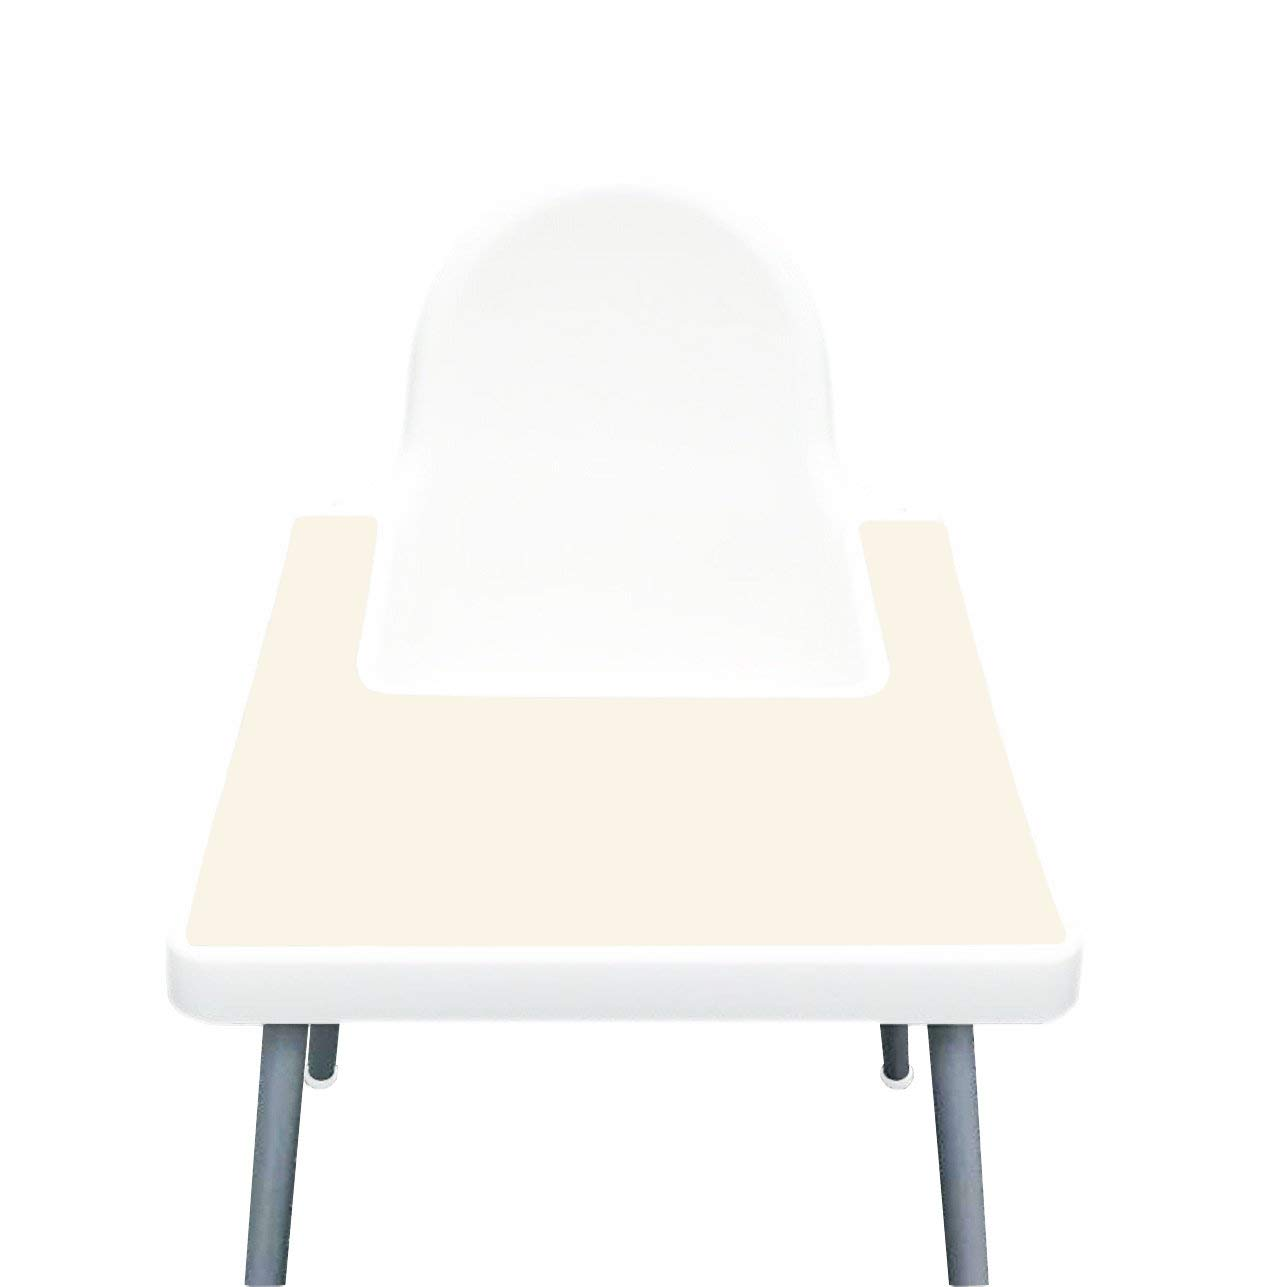 IKEA High Chair Placemat for Antilop Baby High Chair – Silicone Placemats for Baby and Toddler Finger Food Dropping – BPA Free, Dishwasher Safe – Non Slip Food Mat + More Colors (Ivory)